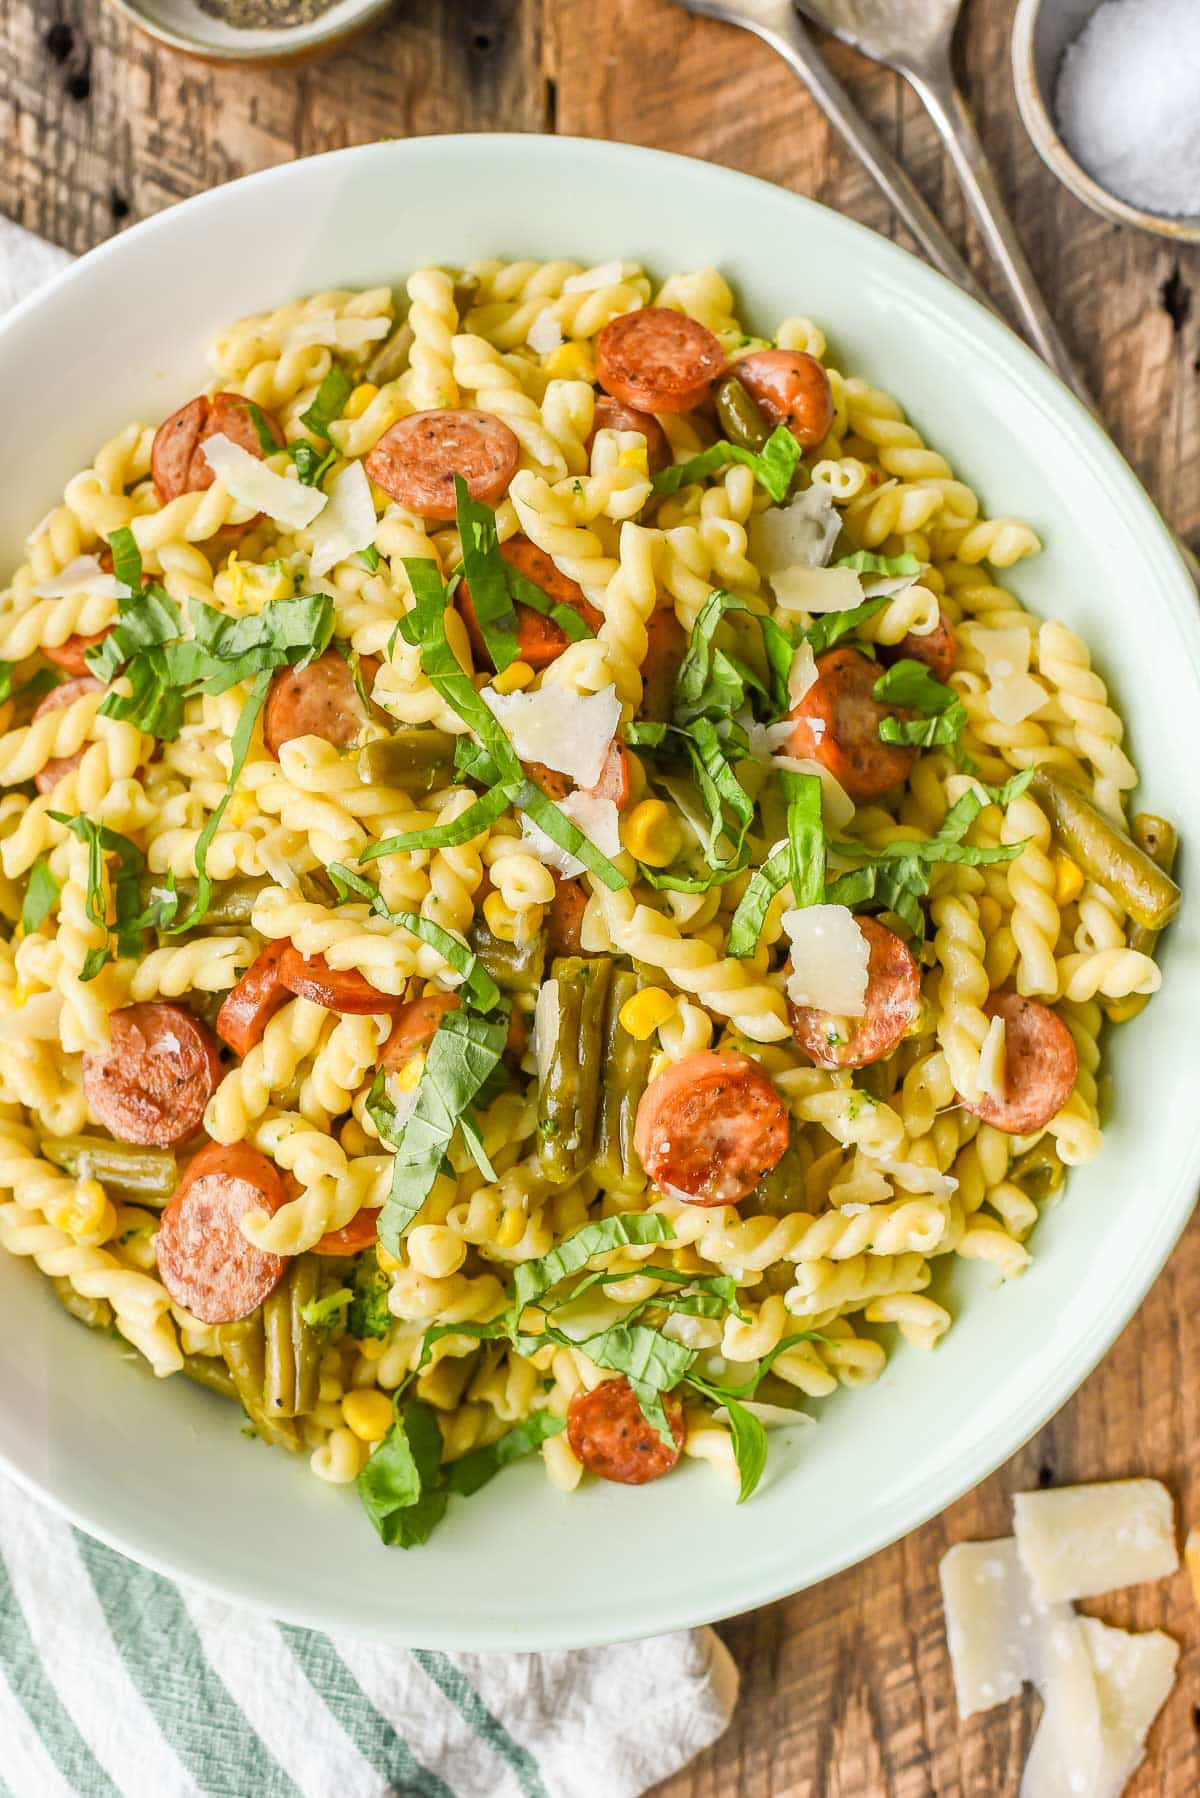 This Easy Parmesan Pasta with Chicken Sausage and Veggies is made in under 30 minutes!